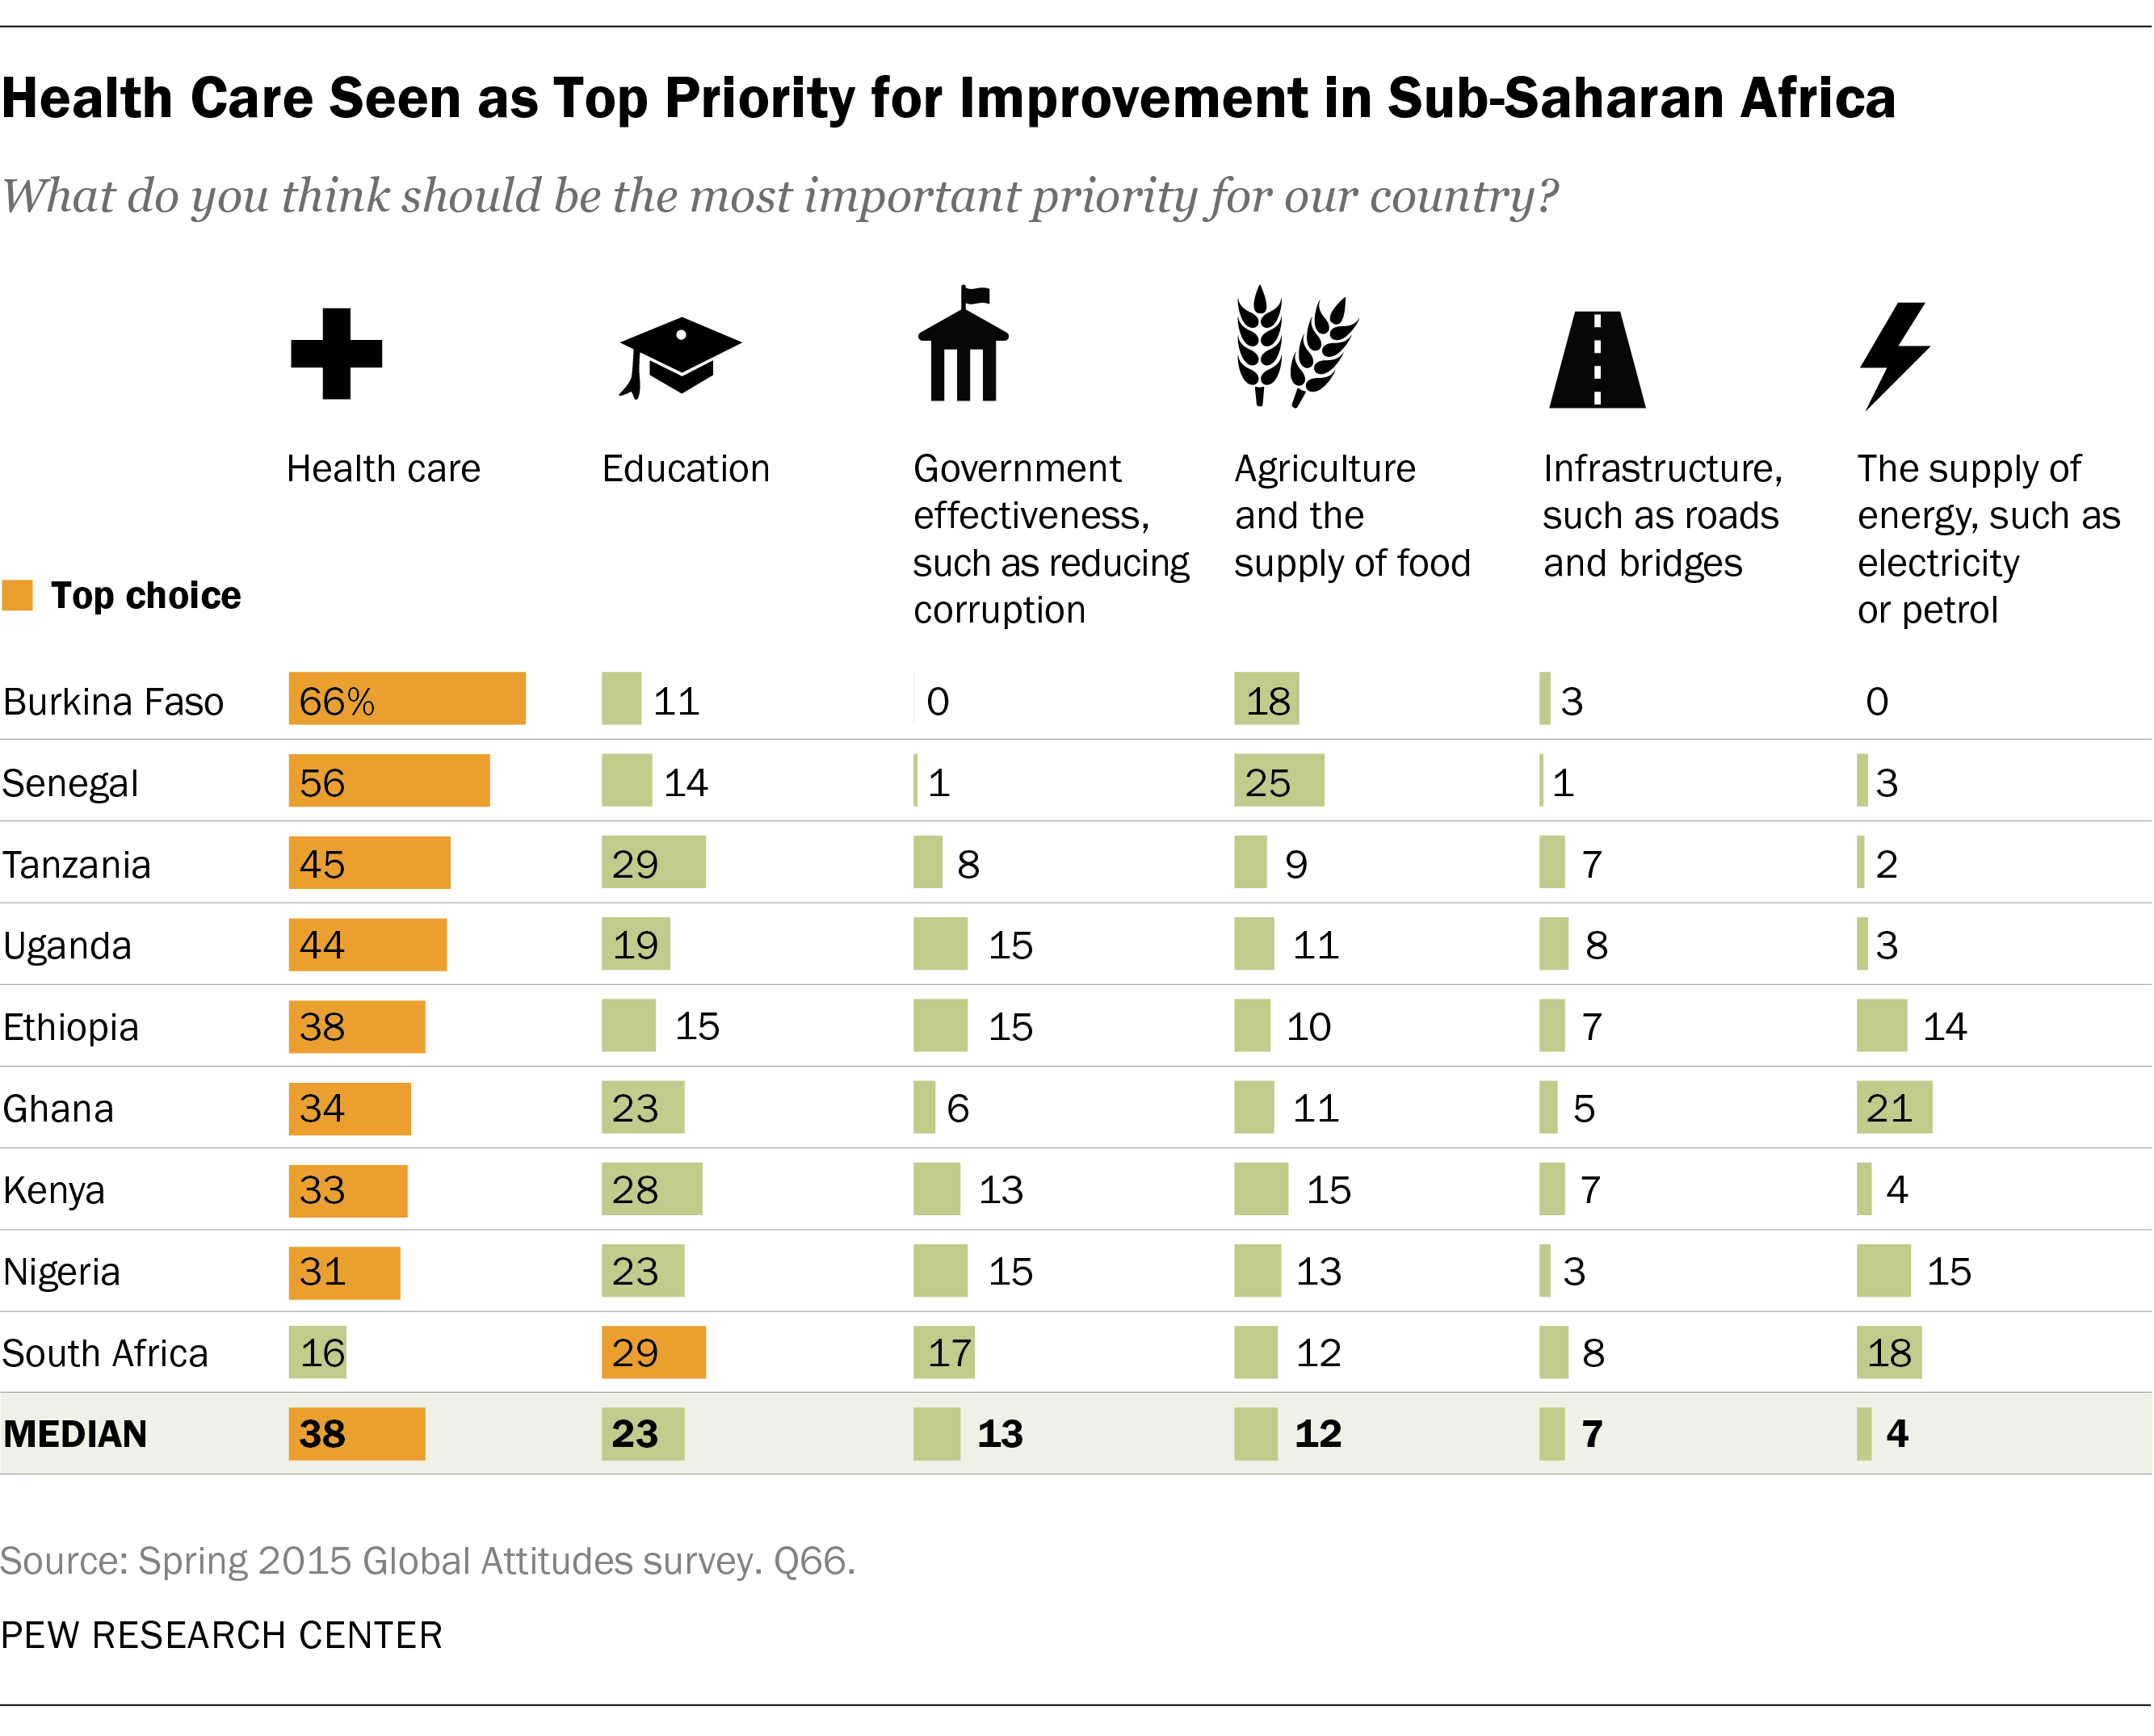 Health Care Seen as Top Priority for Improvement in Sub-Saharan Africa